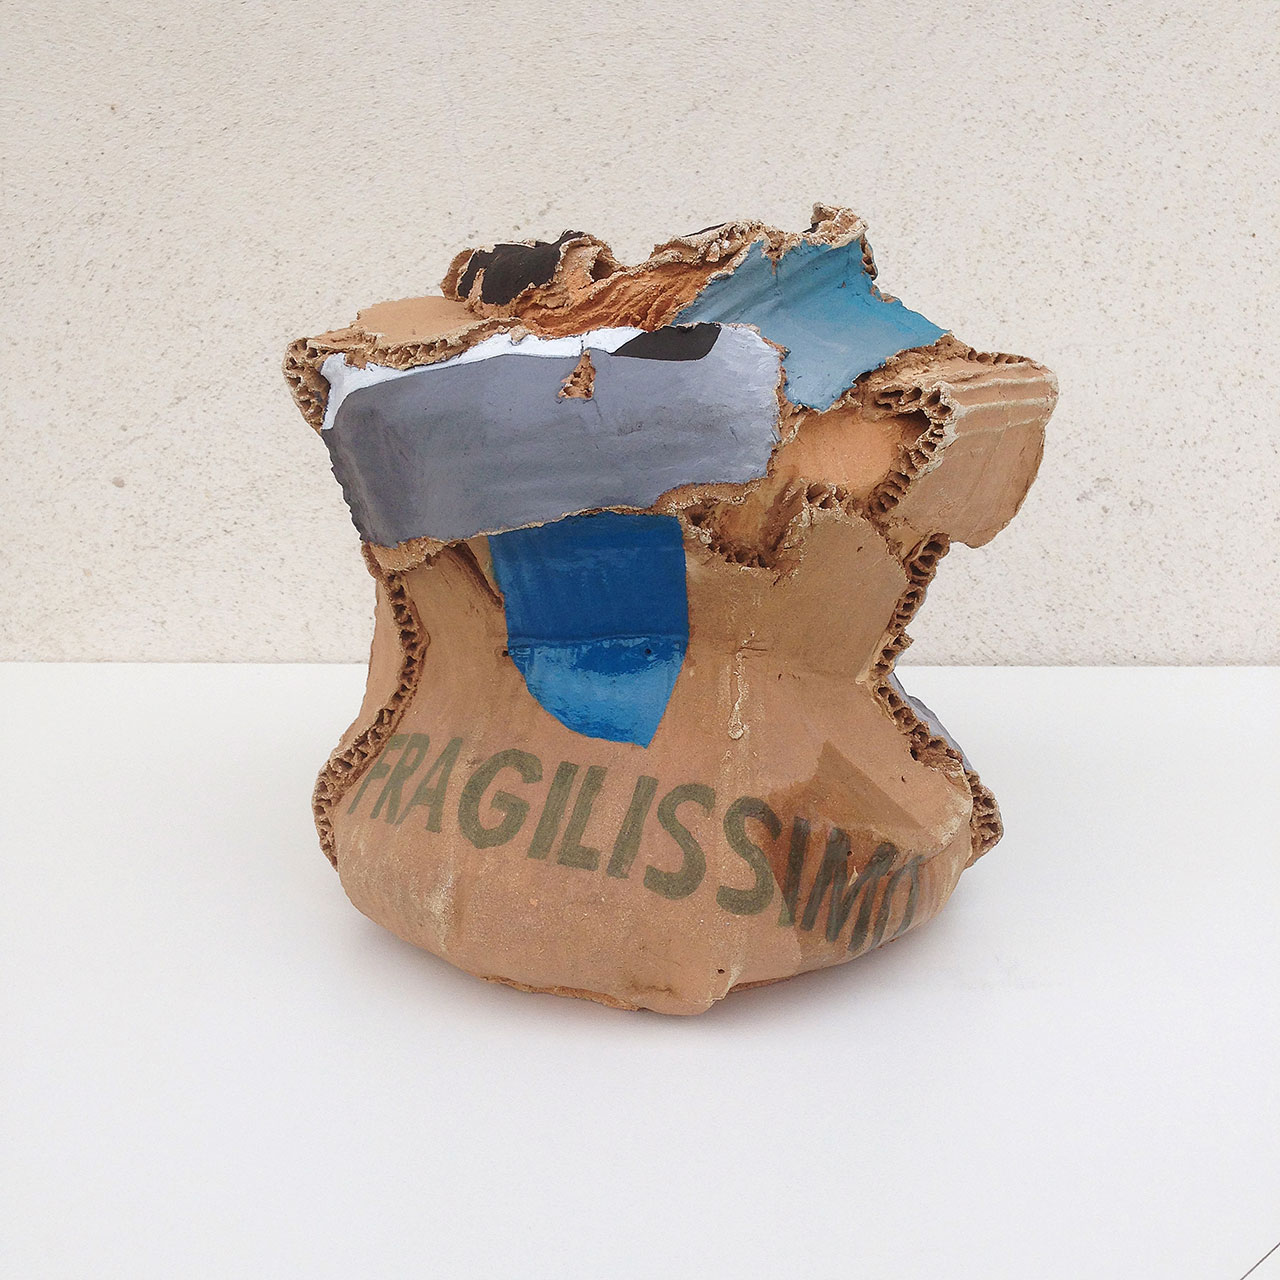 Rodrigo Torres, China in a Box Dynasty, 2016. 17.8 × 20.3 × 17.8 cm. Acrylic paint and varnish over ceramics. Photo by Rodrigo Torres. Courtesy A Gentil Carioca.